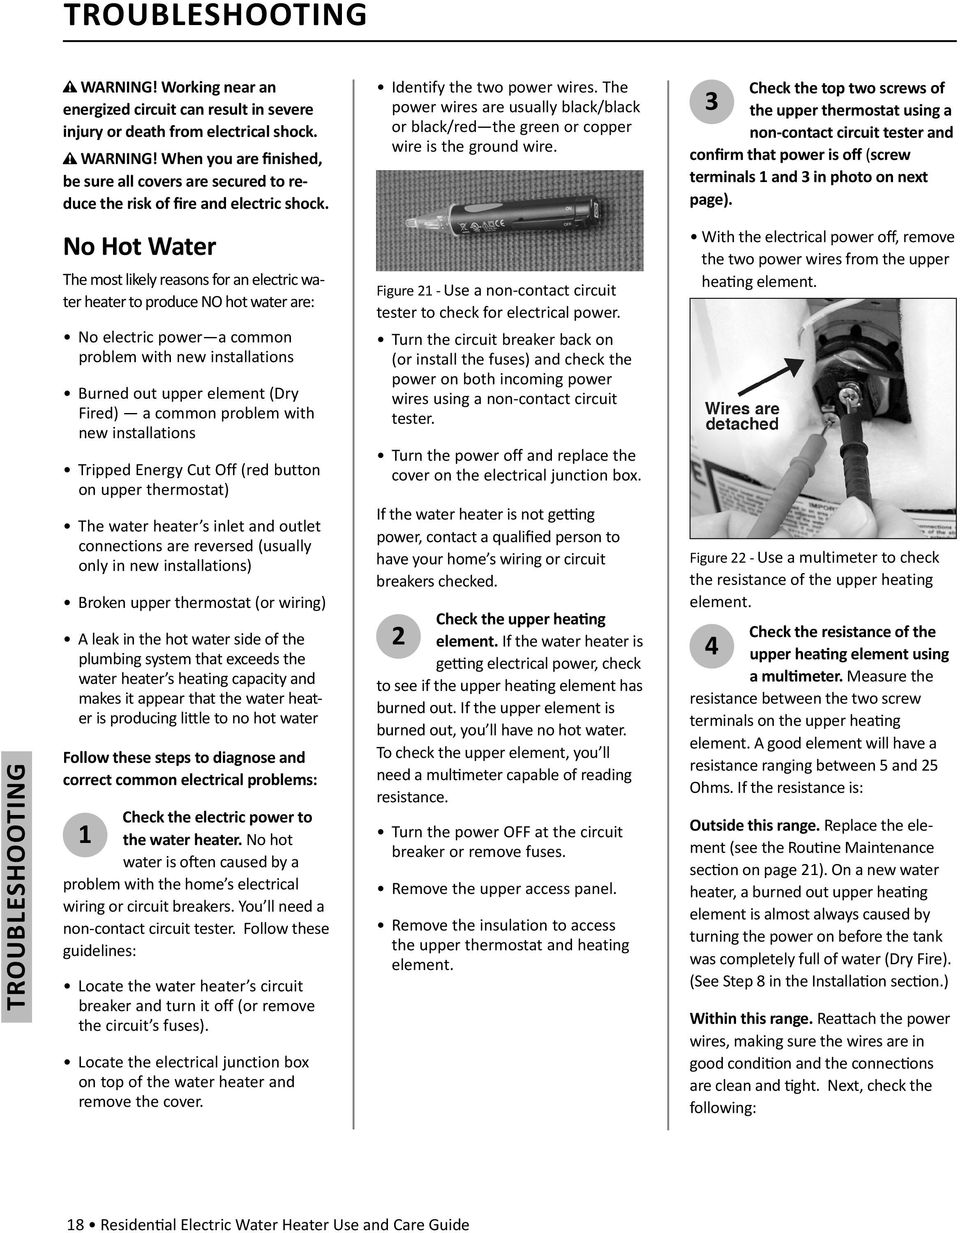 Residen Al Electric Water Heater Pdf Hot Circuit Breaker Check The Top Two Screws Of 3 Upper Thermostat Using A Non Contact